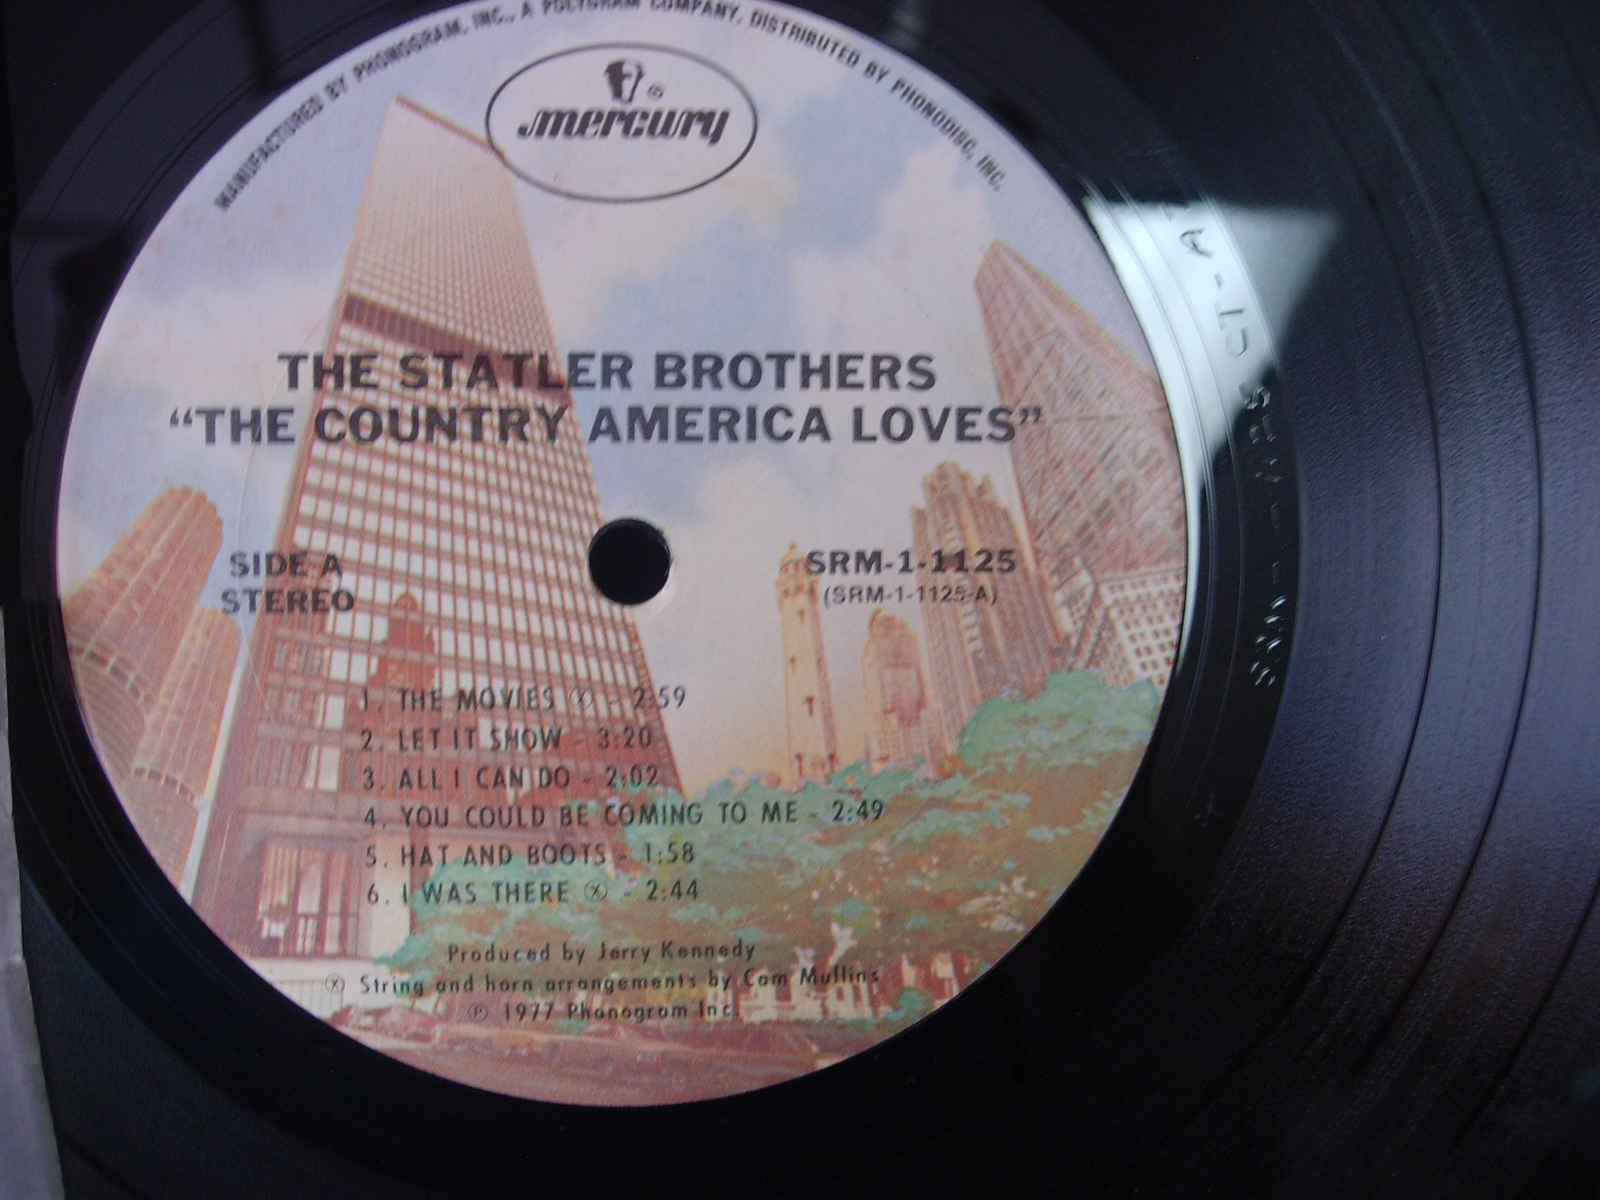 Statler Brothers - The Country America Loves - Mercury SRM 1-1125